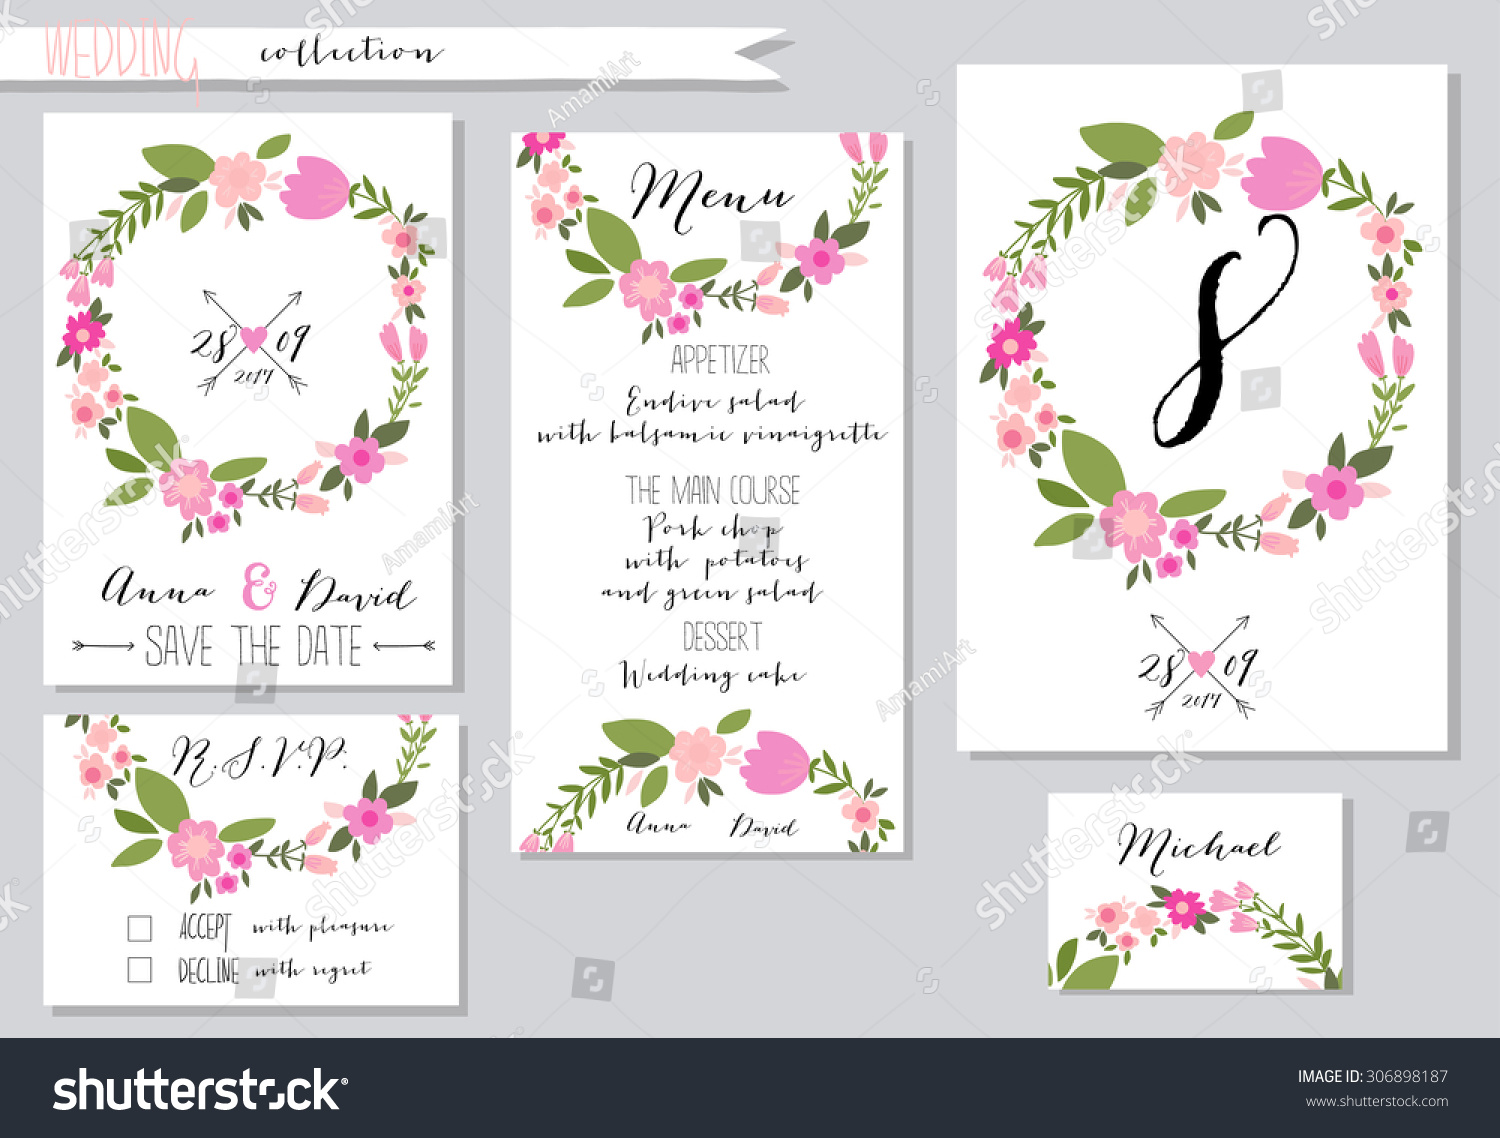 vector illustration collection wedding invitation templates pink